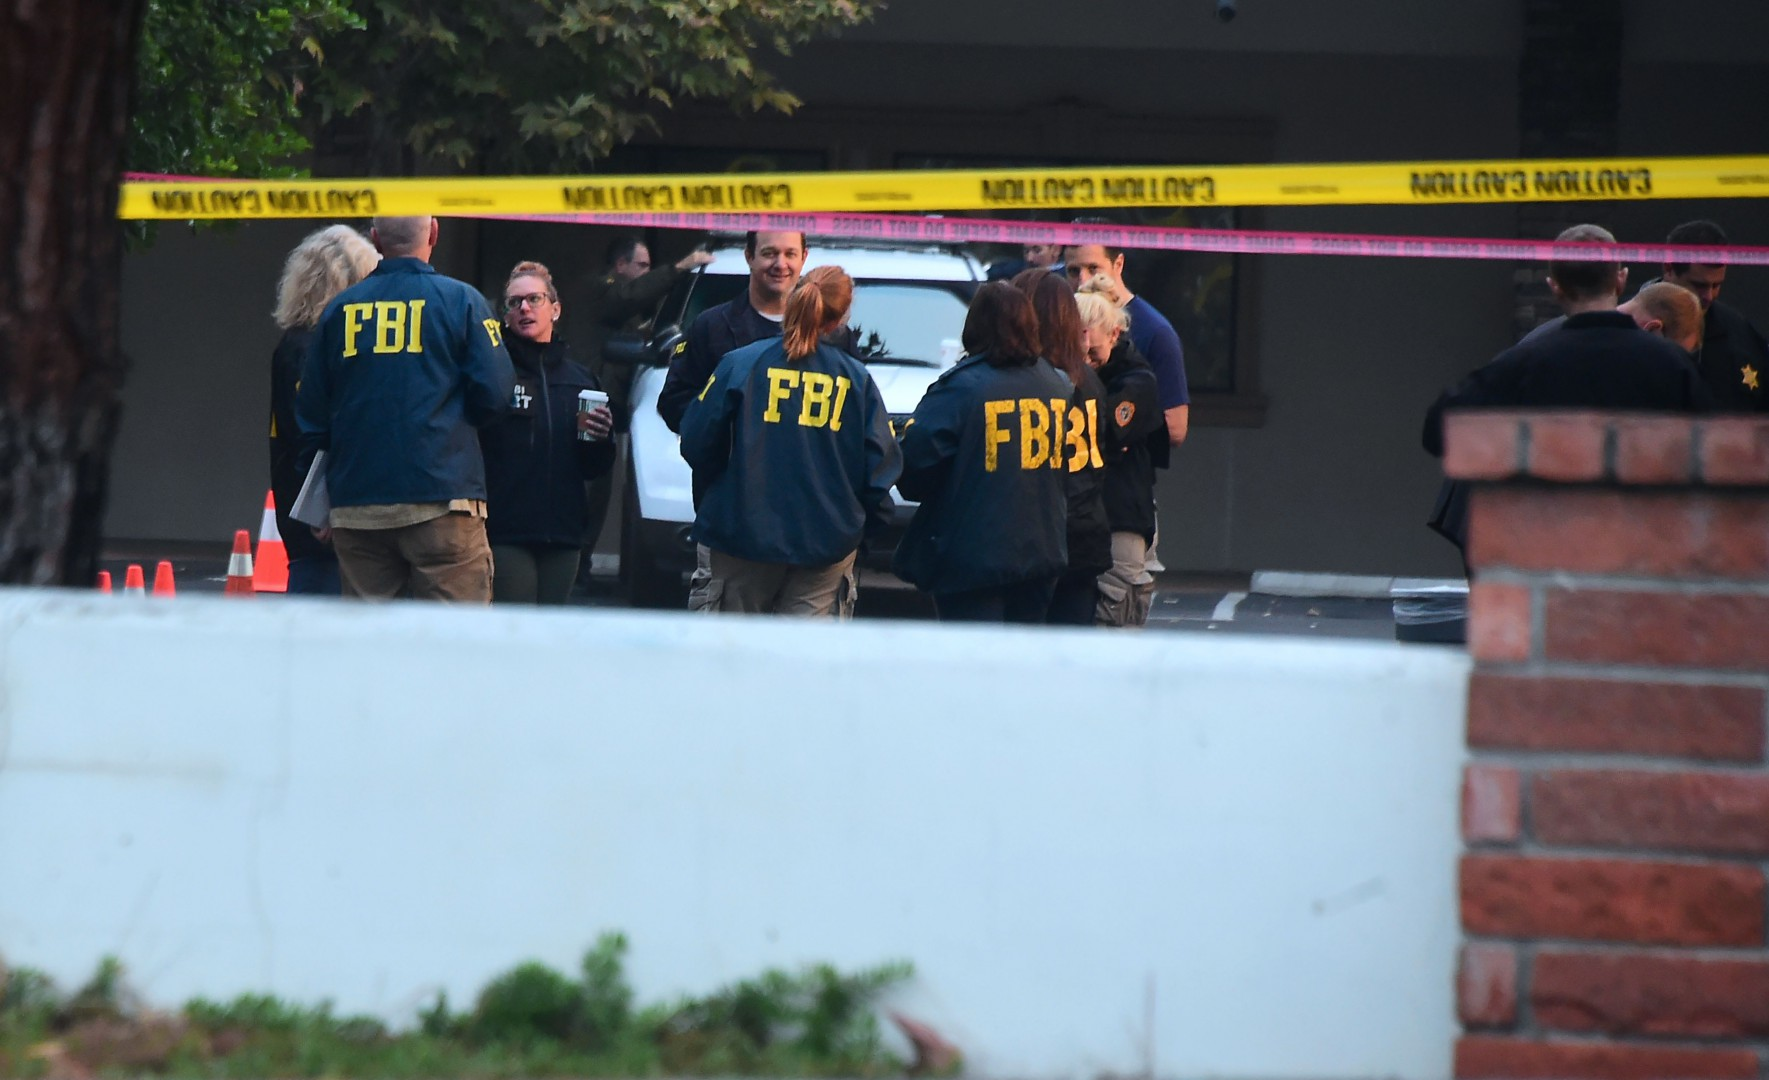 FBI officers congregate in the parking lot of the Borderline Bar and Grill in Thousand Oaks, California on November 8, 2018. - A 28-year-old former US Marine opened fire in the country music bar packed with college students, killing 12 people including a police officer. Ventura County Sheriff Geoff Dean told a news conference the suspect had been identified as Ian David Long, a veteran of the US Marine Corps. (Photo by Frederic J. BROWN / AFP)